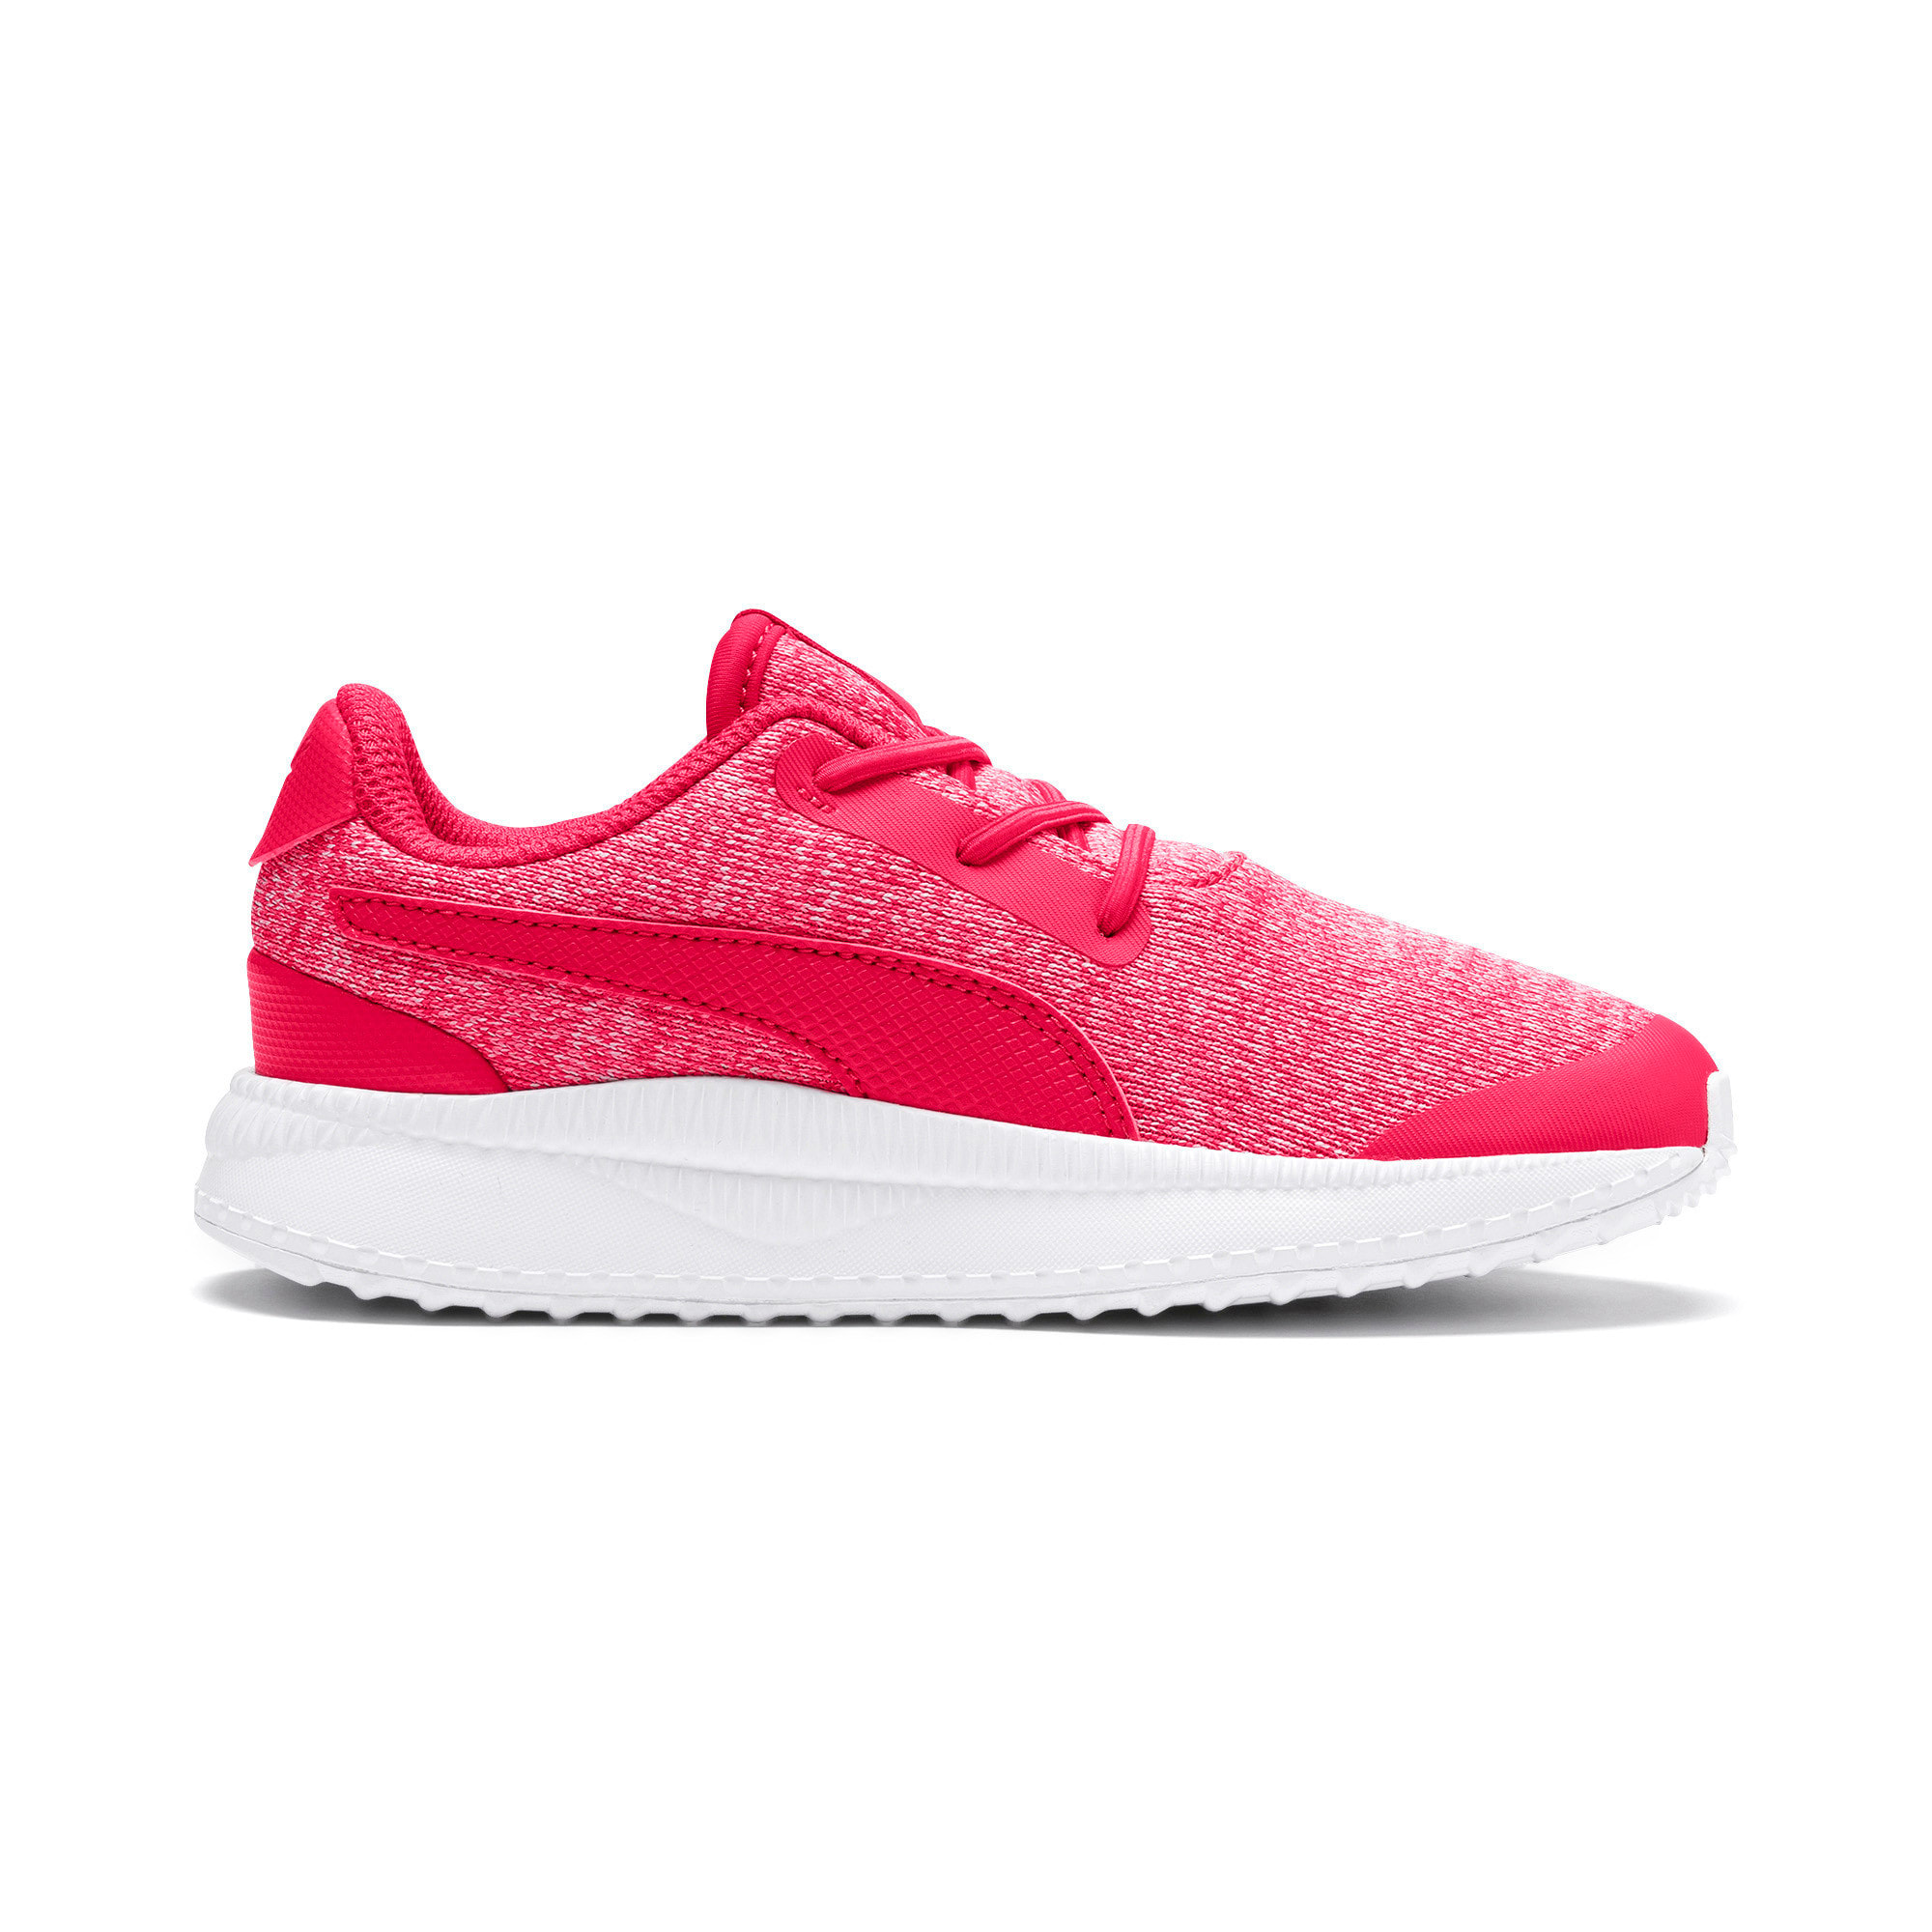 Thumbnail 5 of Pacer Next FS Knit AC Kids Sneaker, Nrgy Rose-Puma White, medium